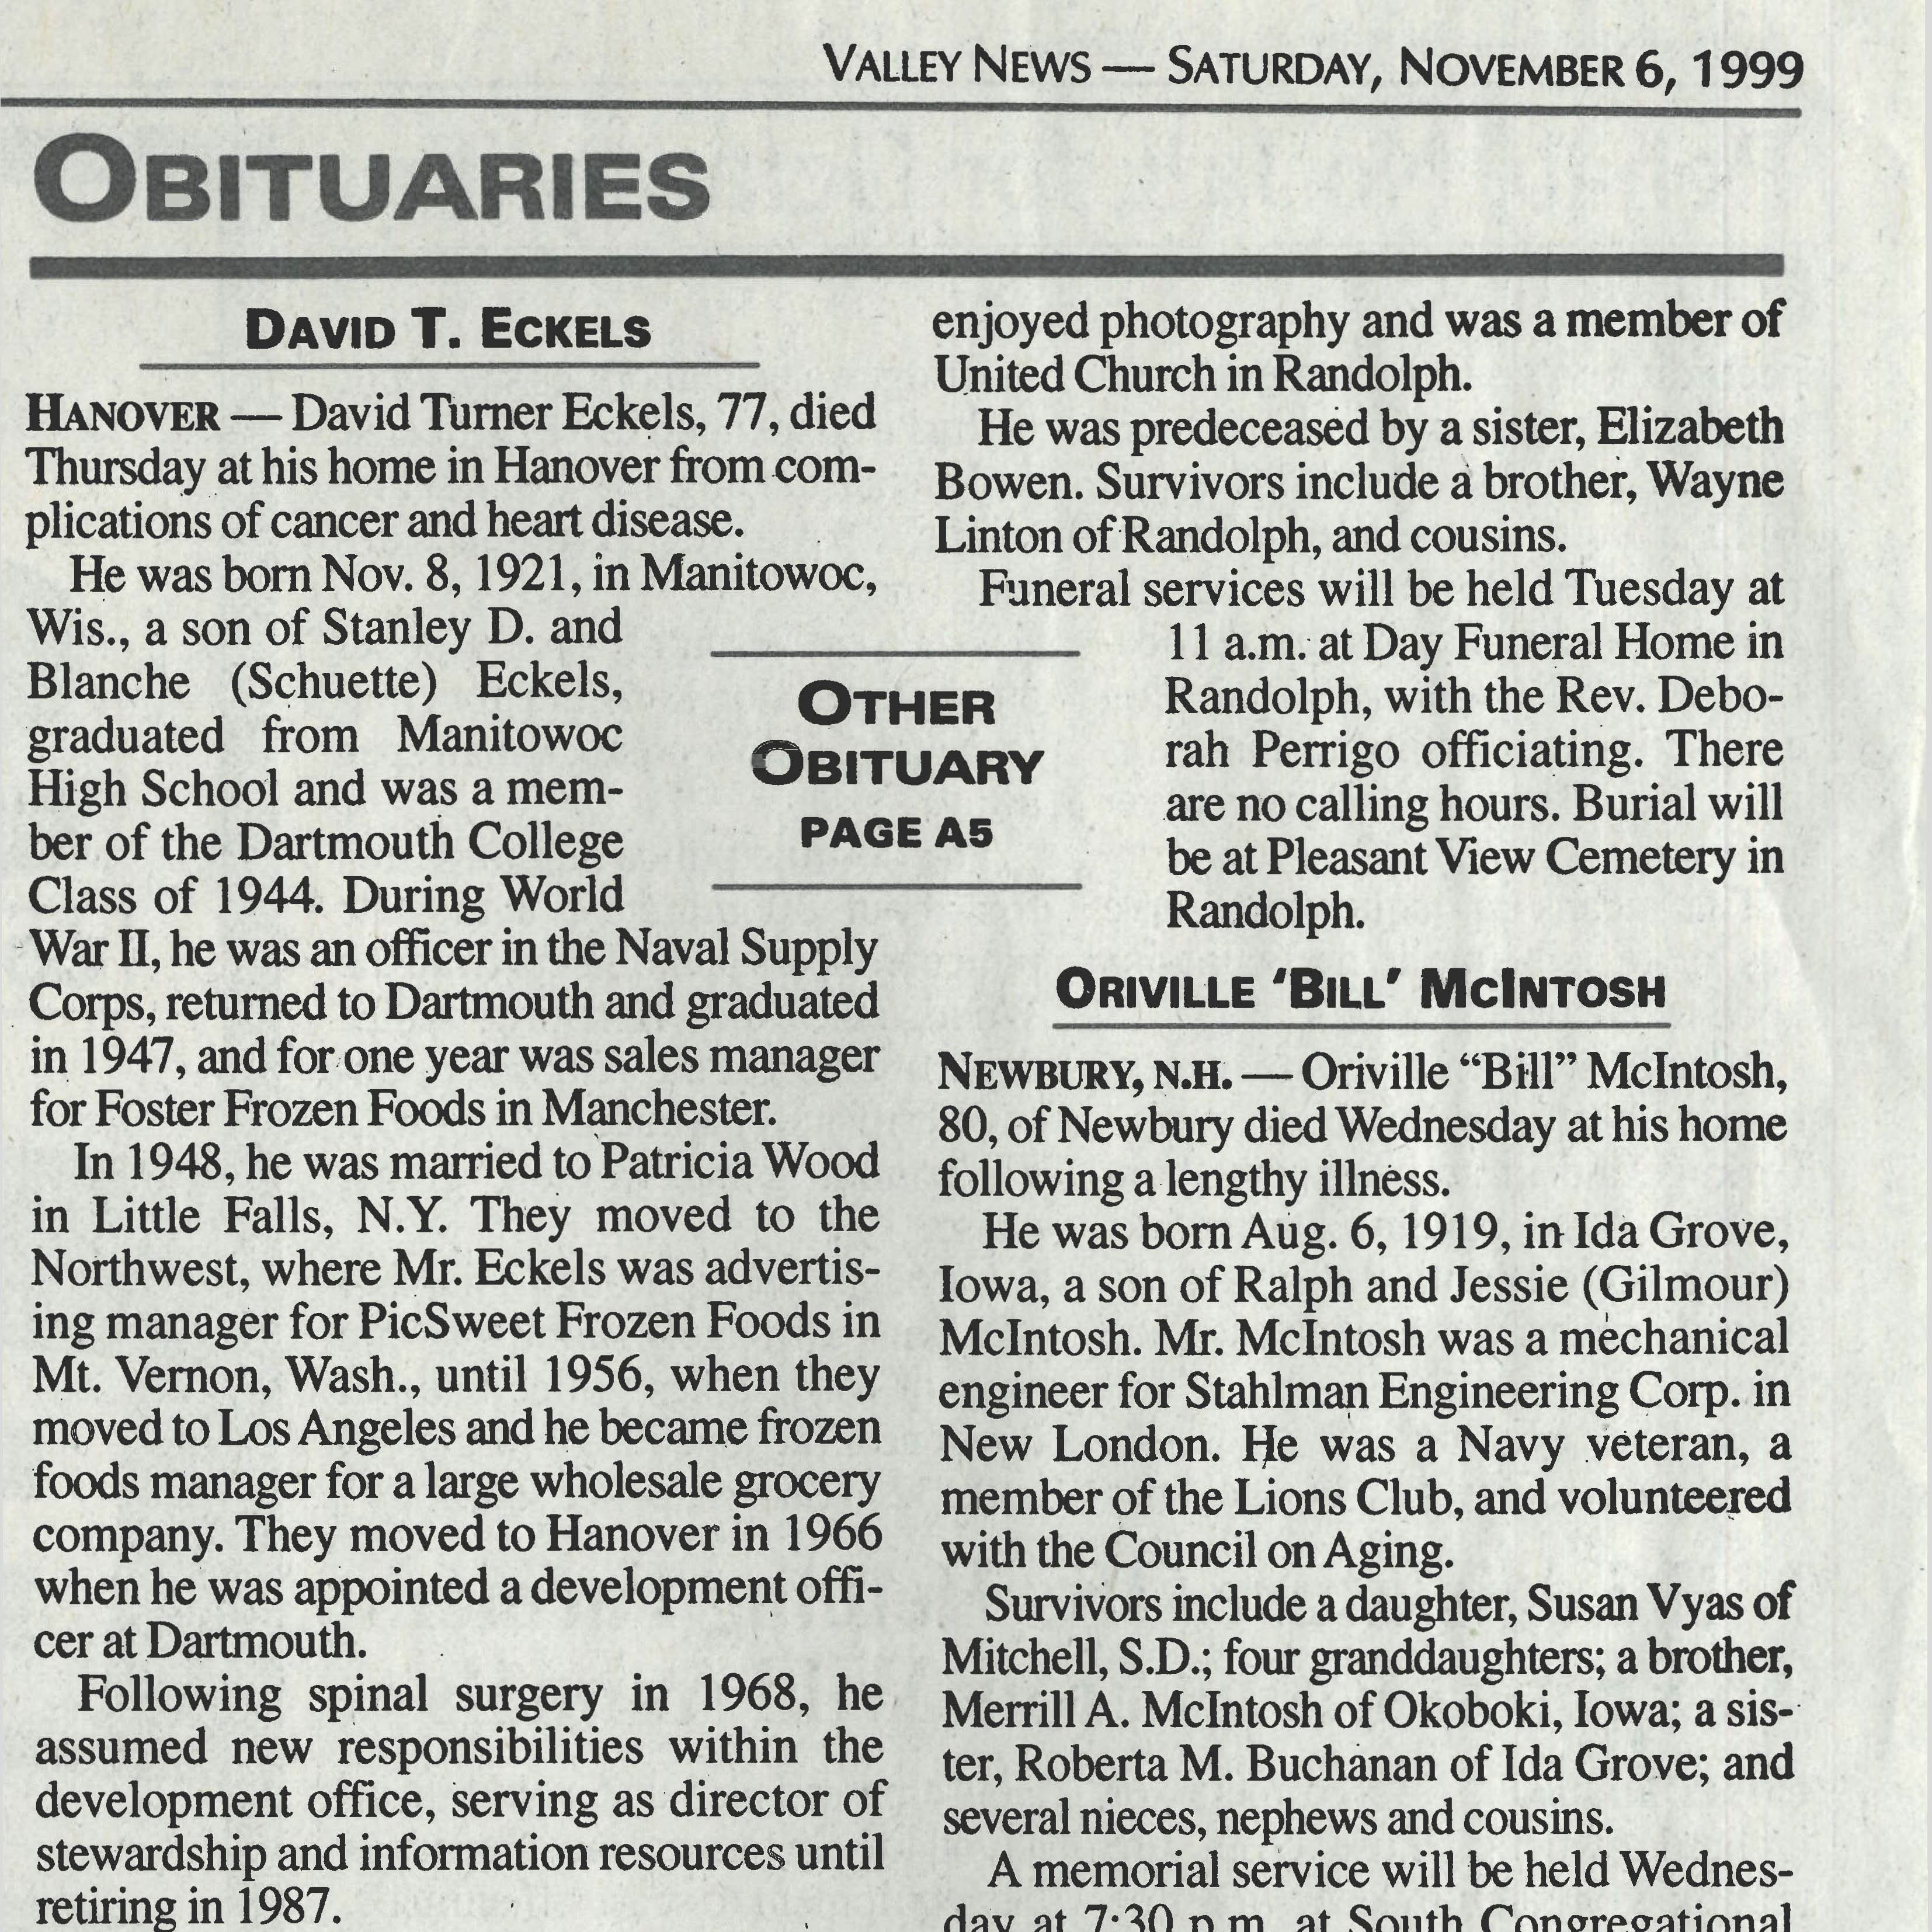 An obituary for Dave Eckels published in the Valley News.